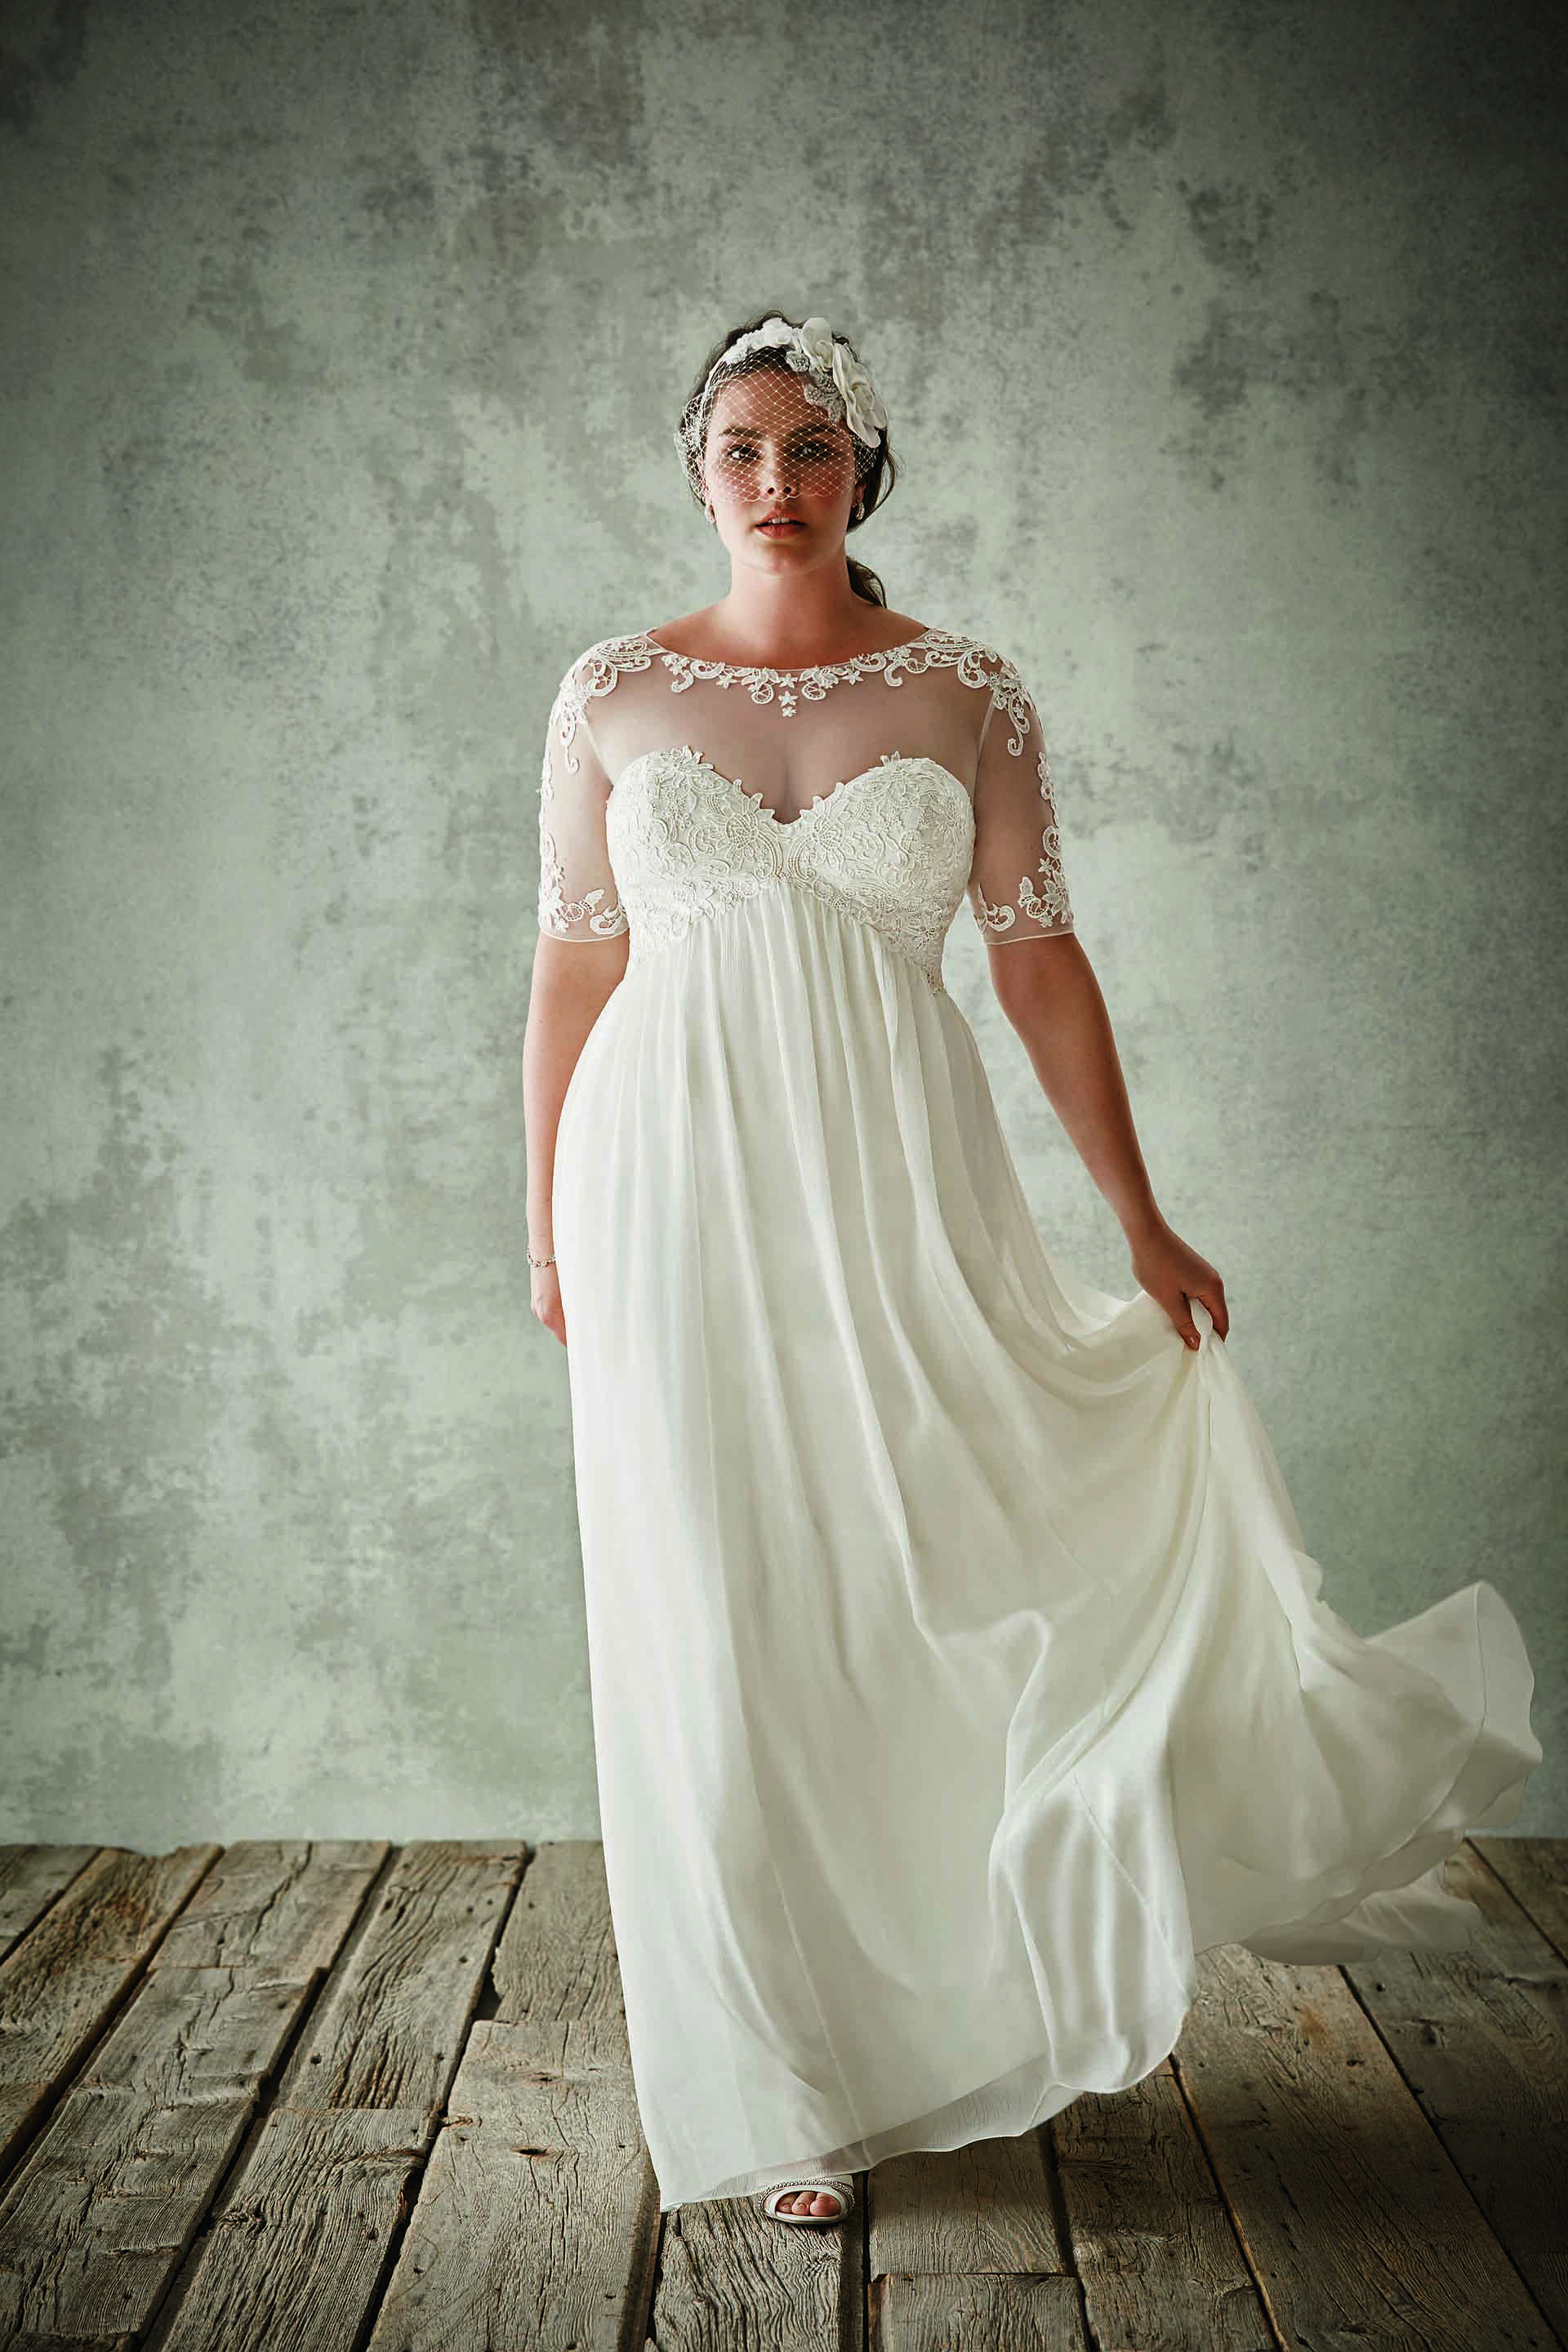 Fashion plus size wedding dresses with half sleeves sheer jewel neck